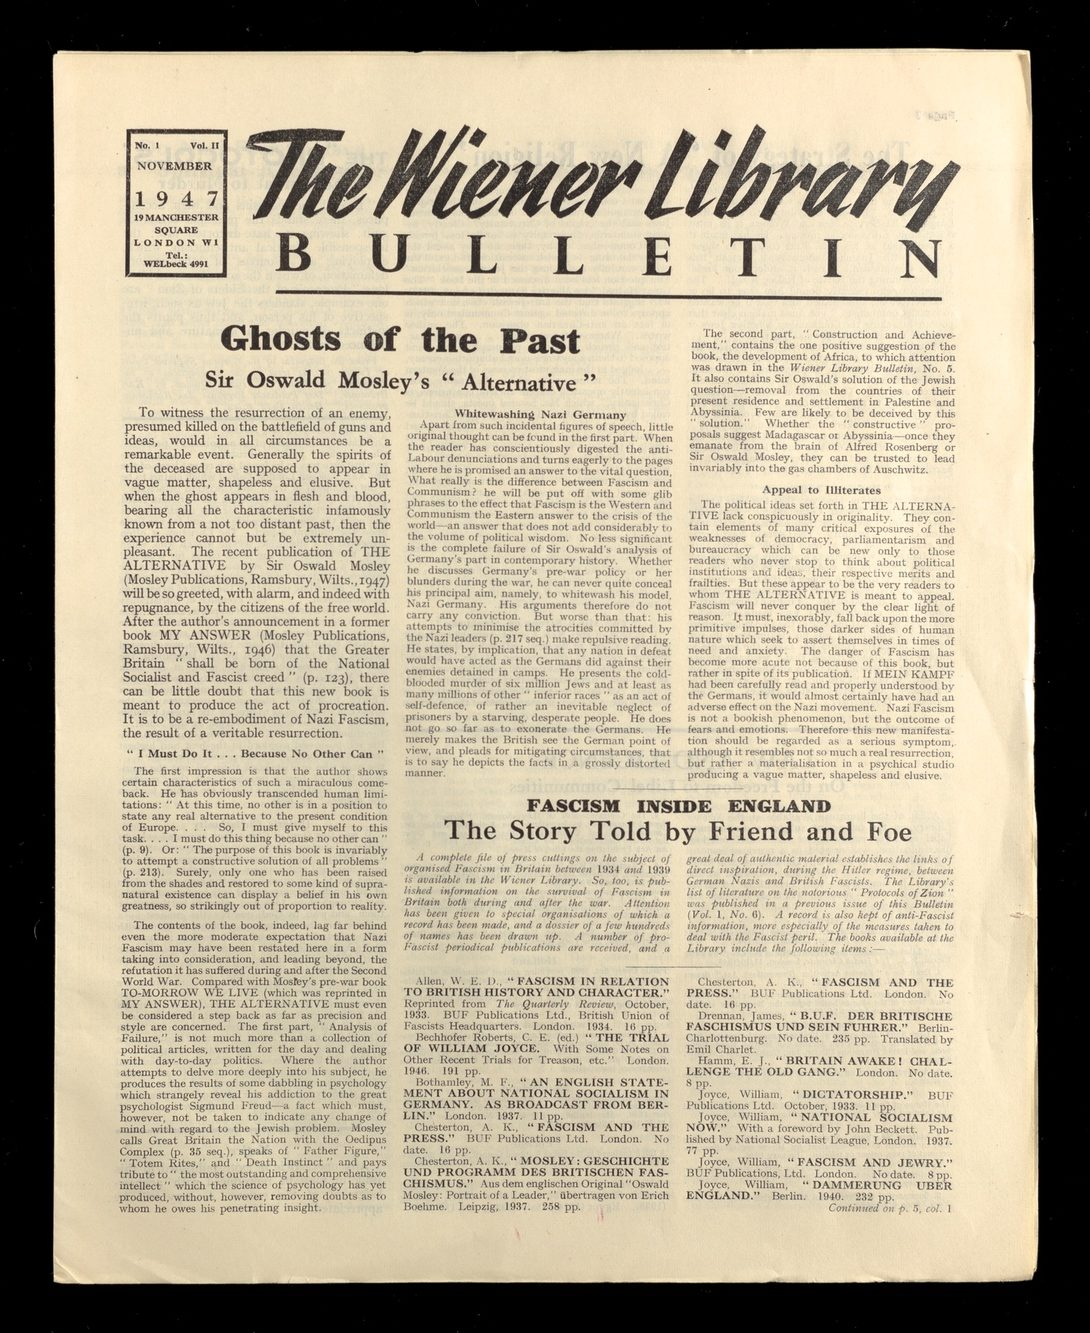 An issue of The Wiener Library Bulletin, published in November 1947.